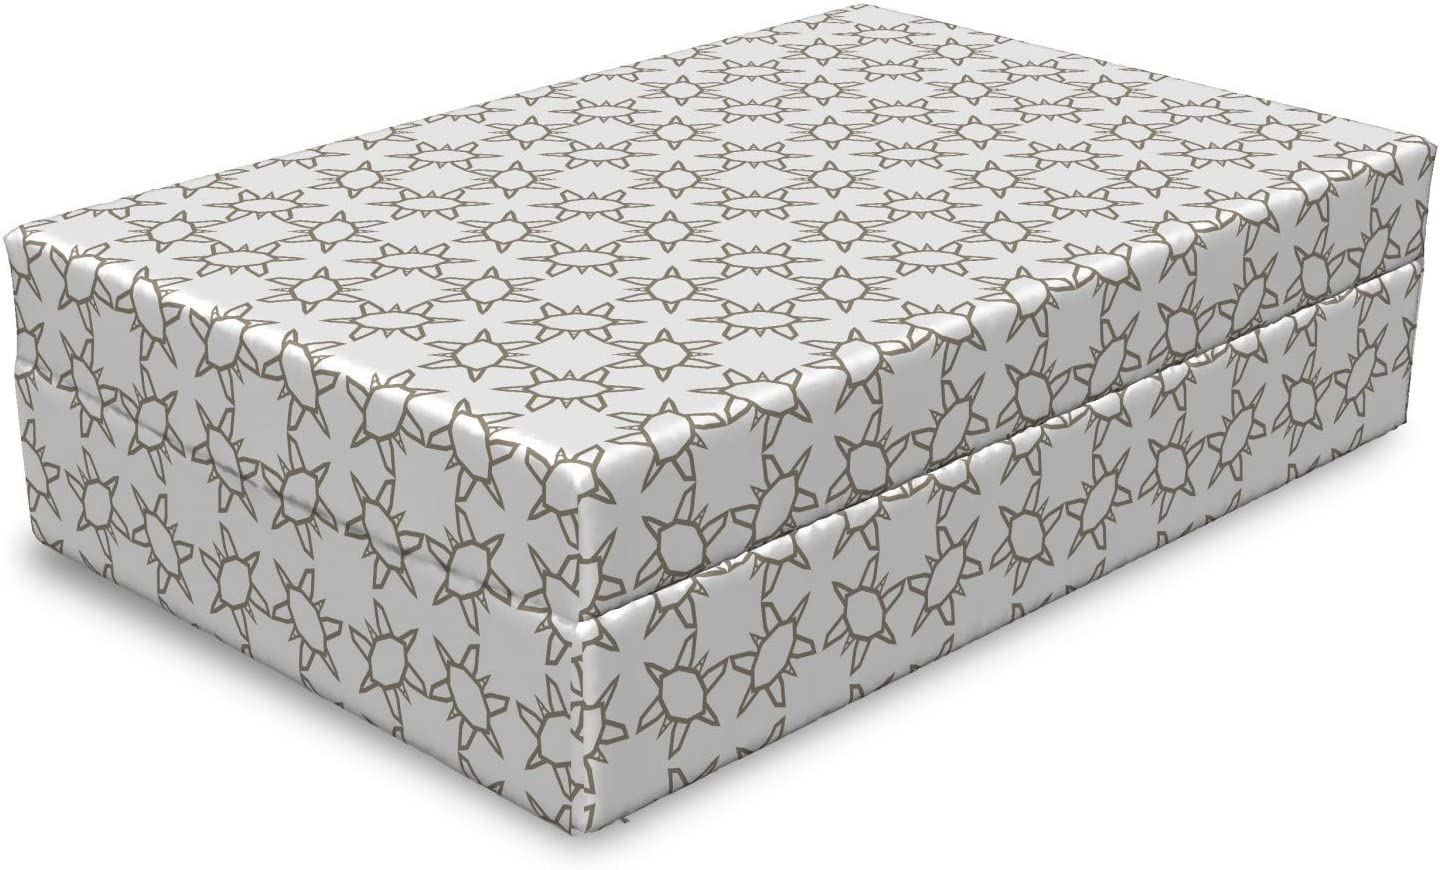 Lunarable Geometrical Dog Bed Minimalist In a popularity Motifs Abstract Mon 100% quality warranty in